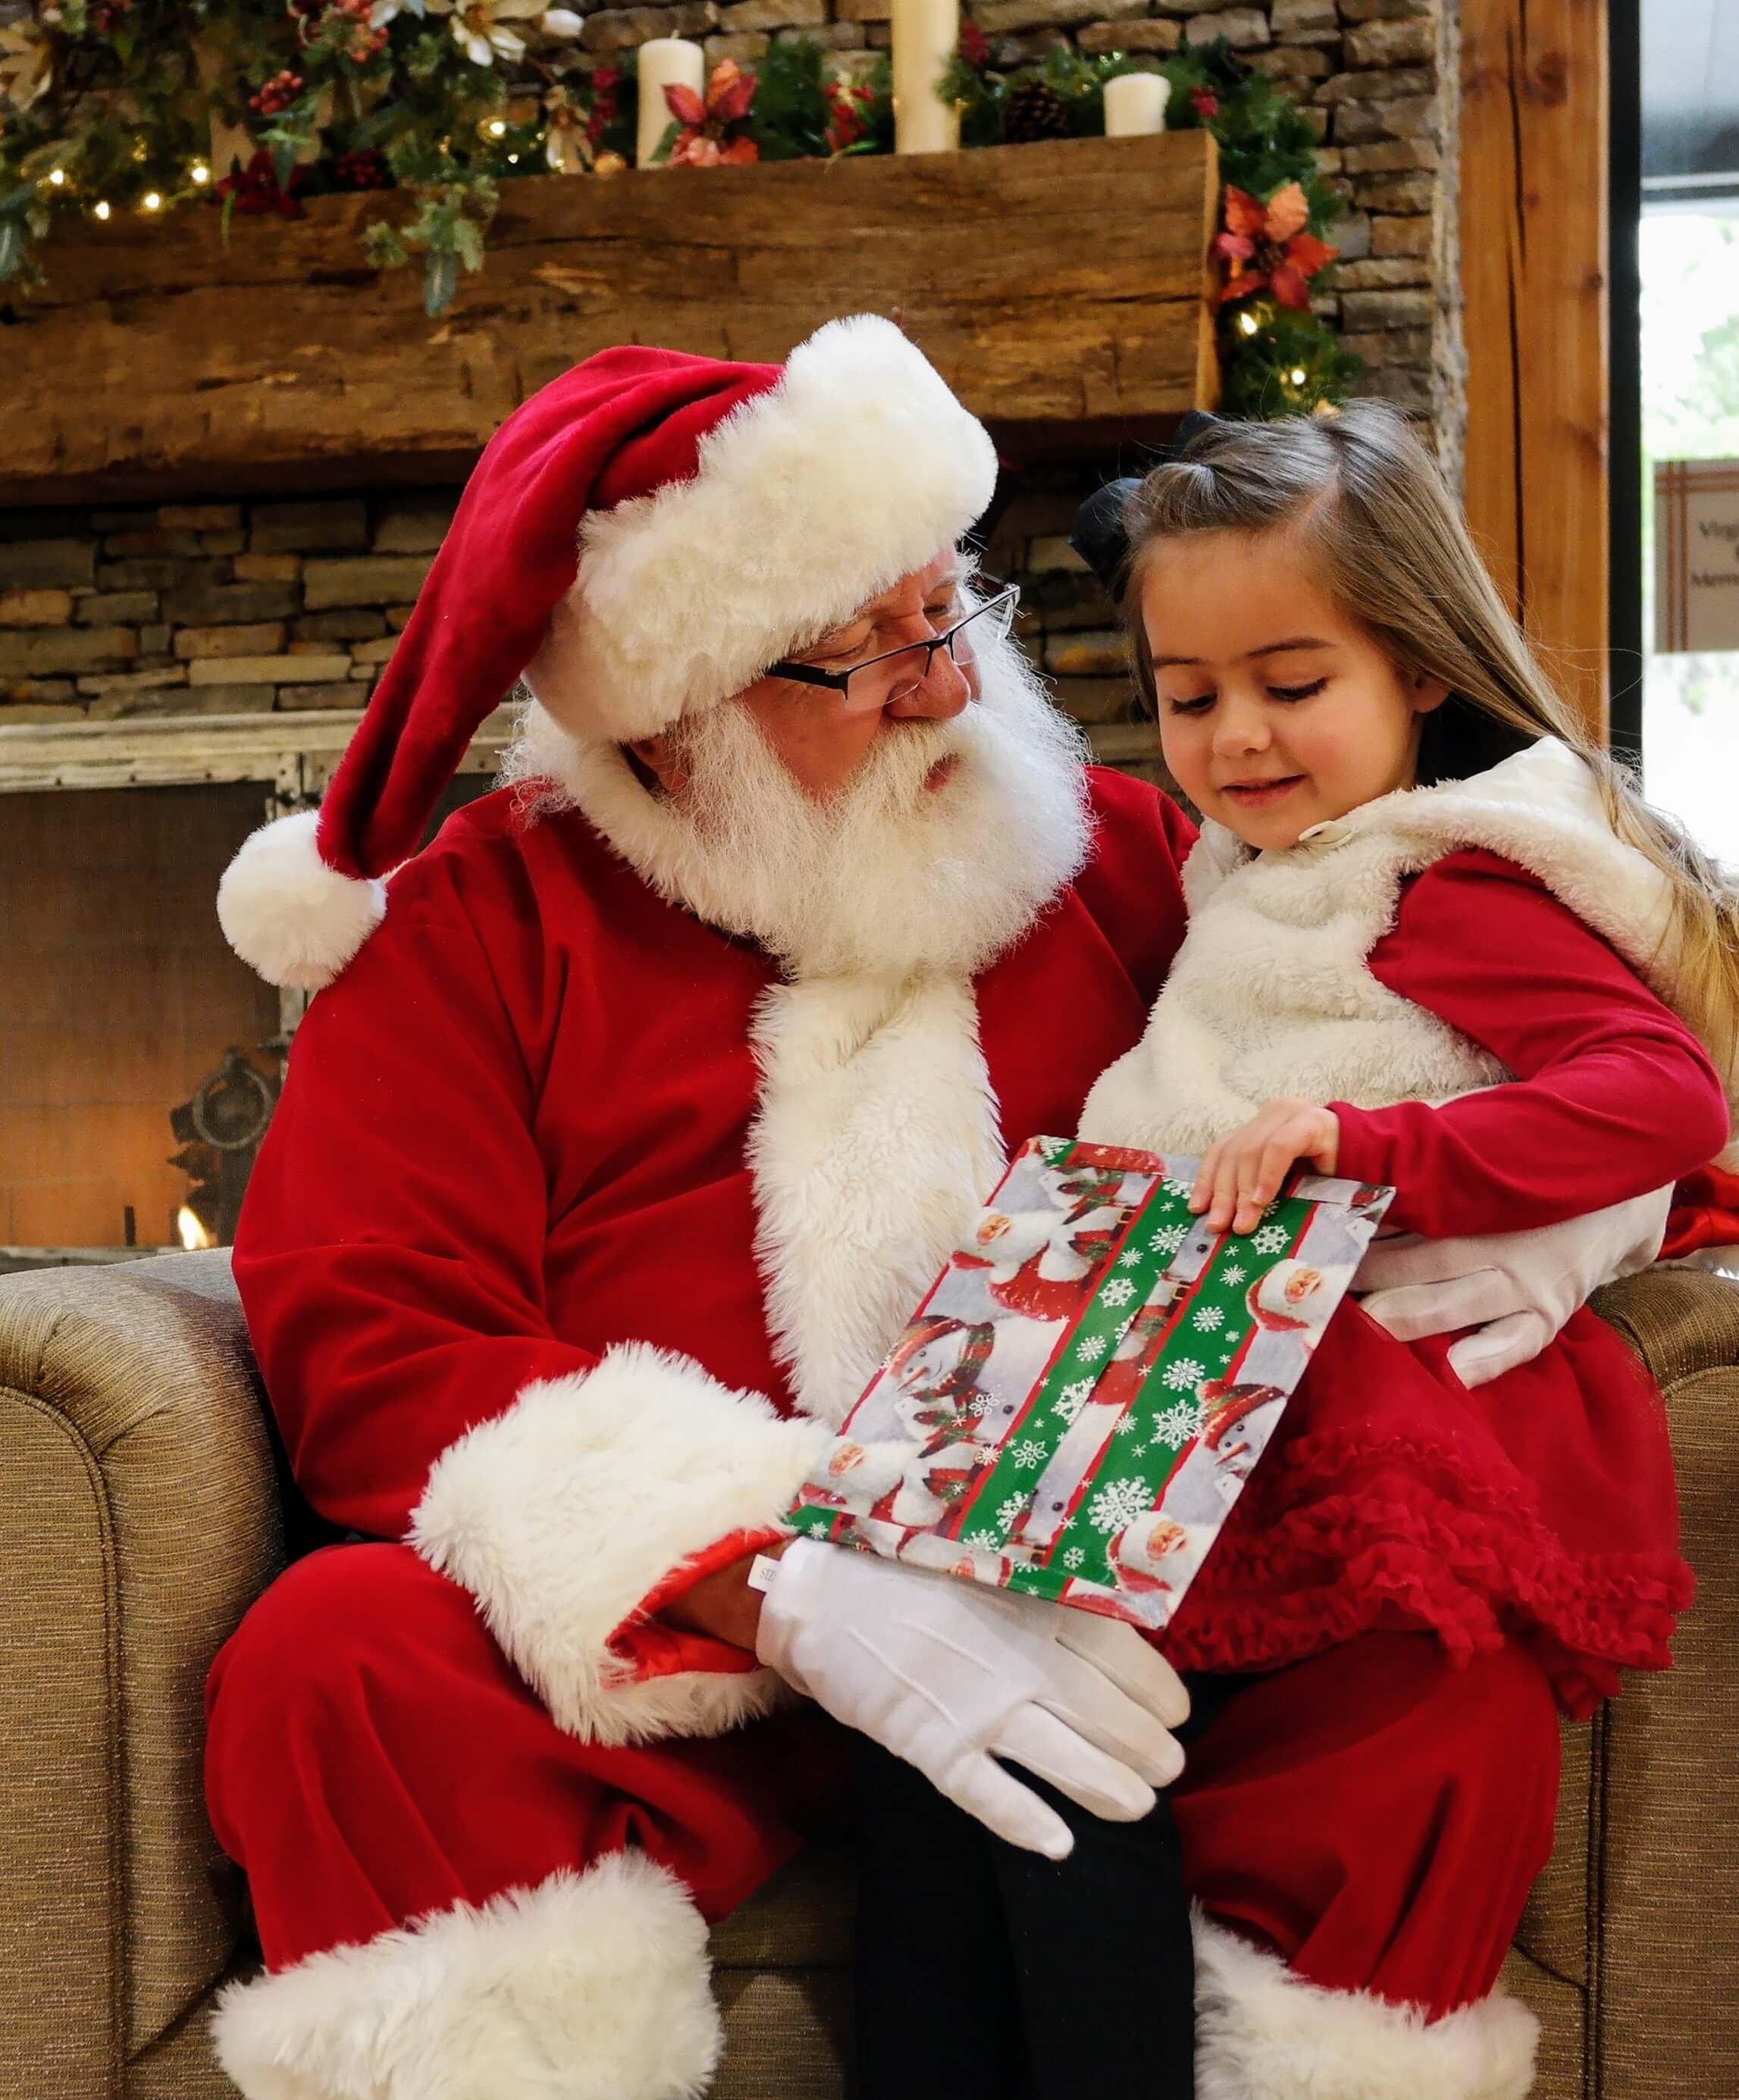 Santa gifts children a book of their own